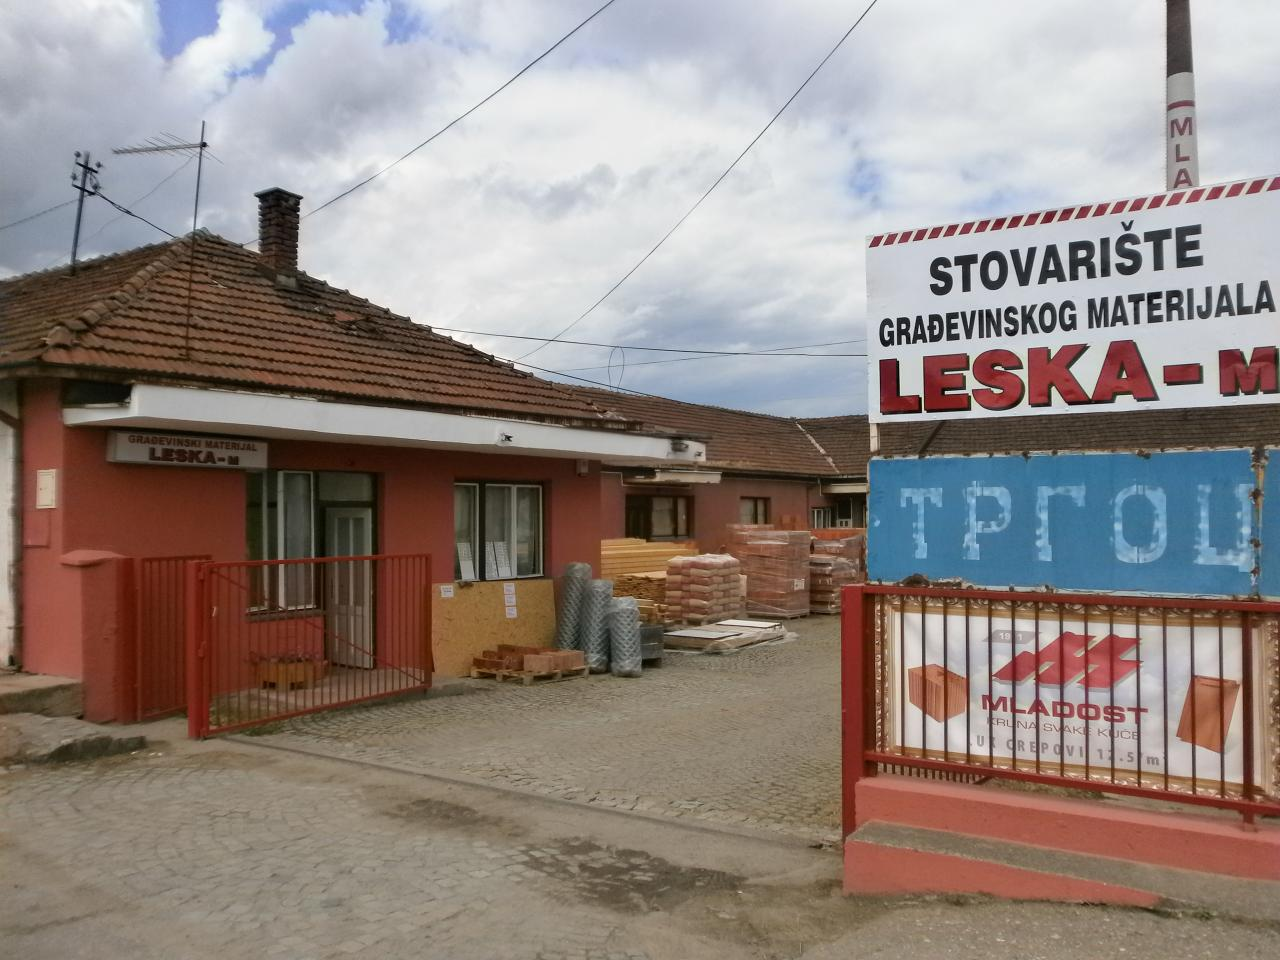 WAREHOUSE OF BUILDING MATERIAL LESKA-M Construction companies and services Leskovac - Photo 1